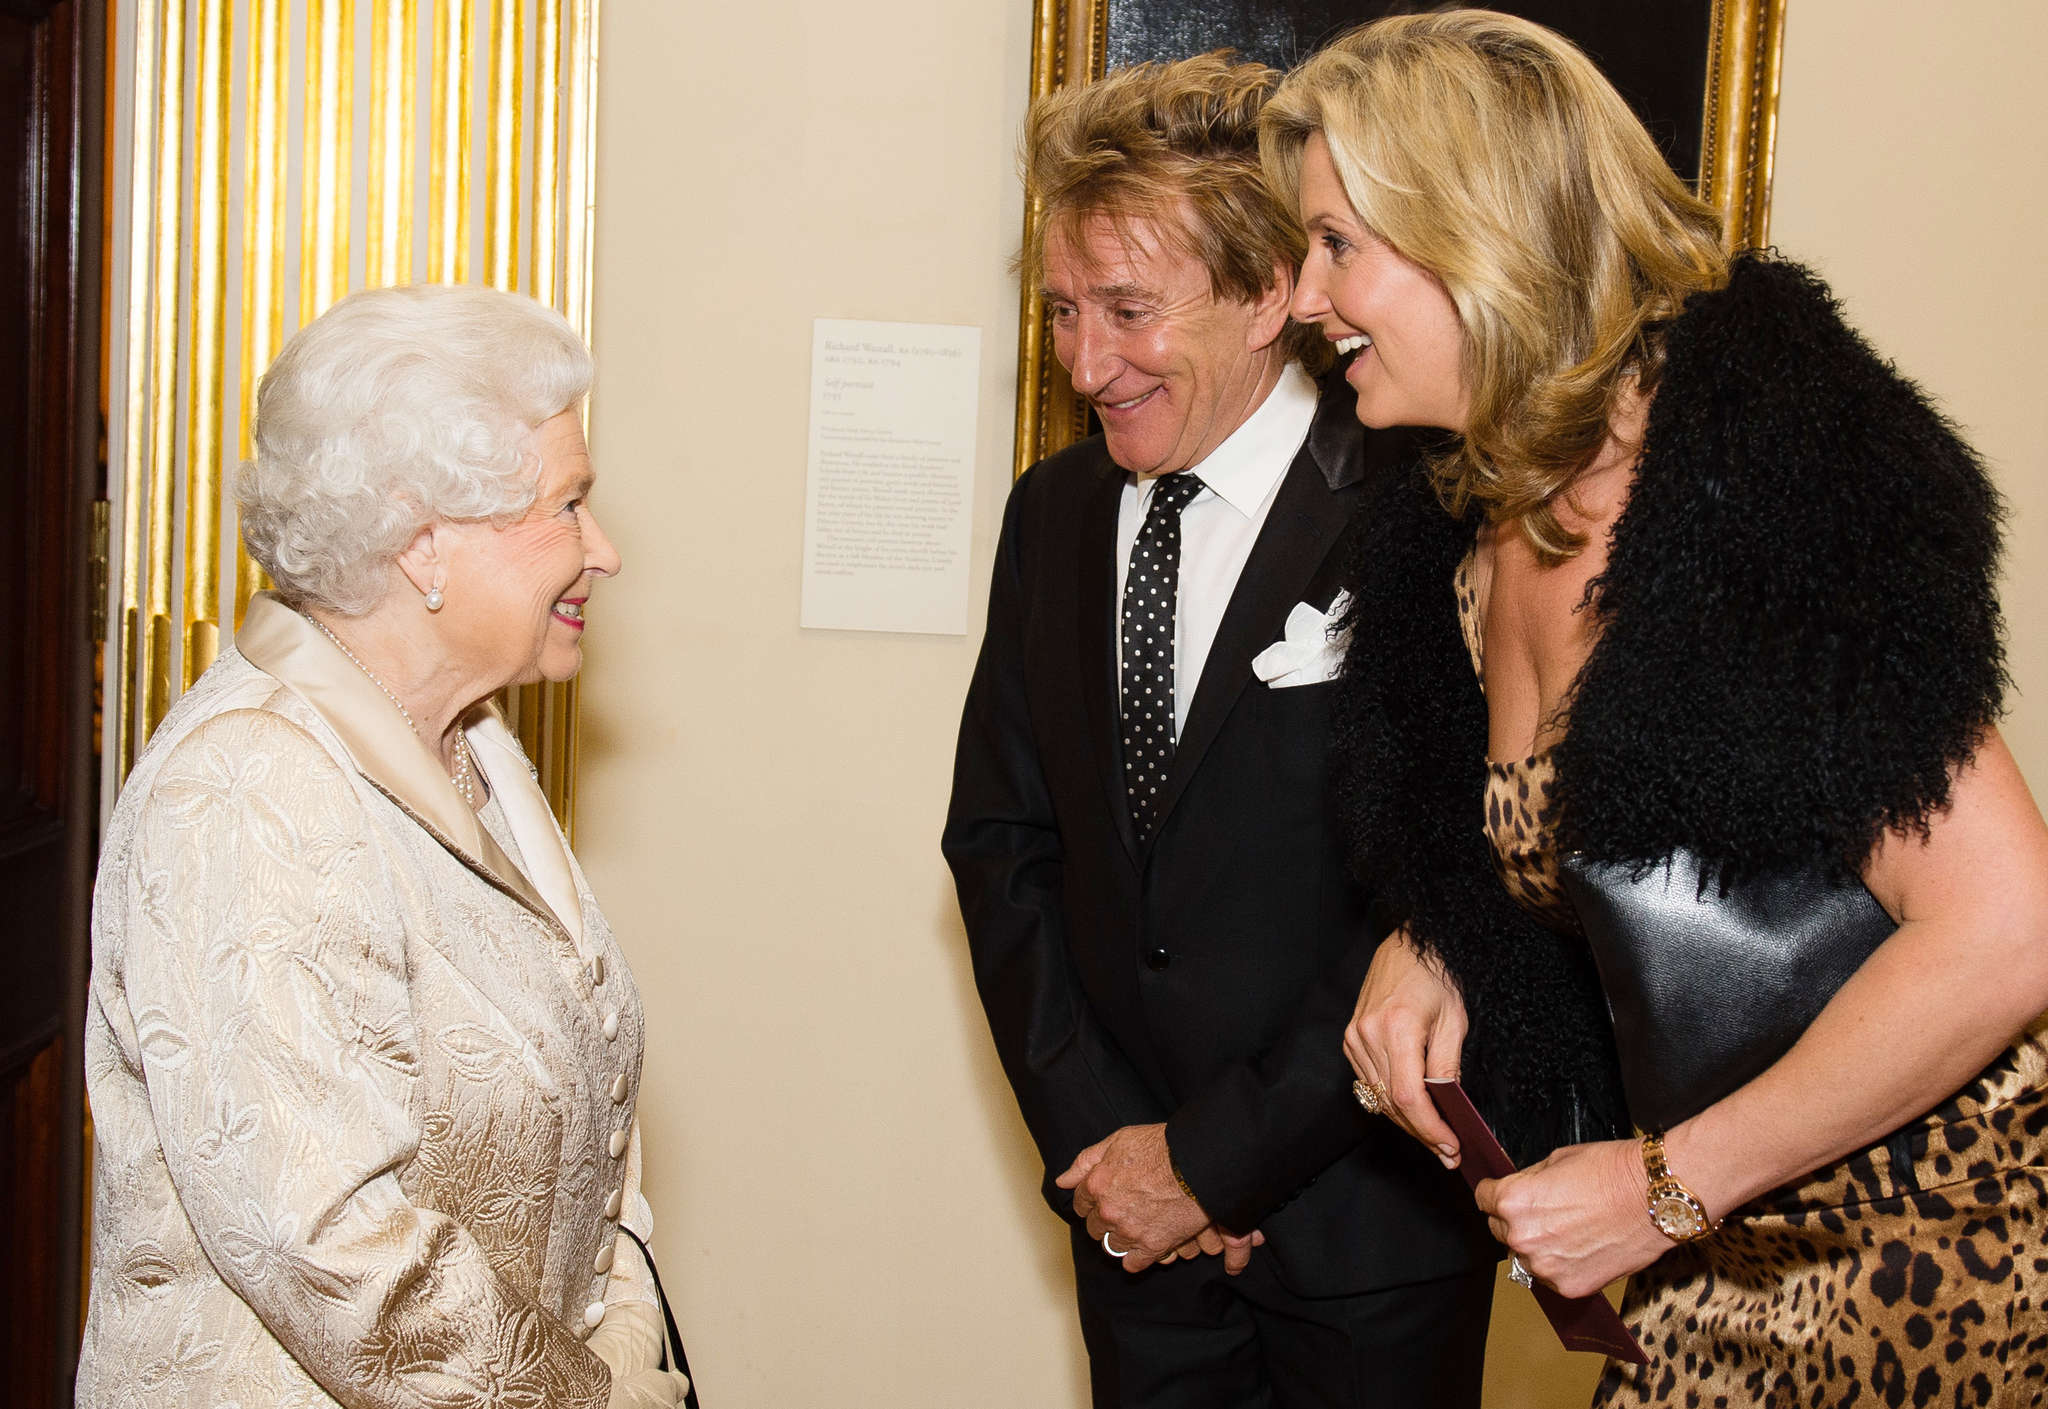 Queen Elizabeth II greets Sir Rod Stewart and wife Penny Lancaster after he was awarded a knighthood.